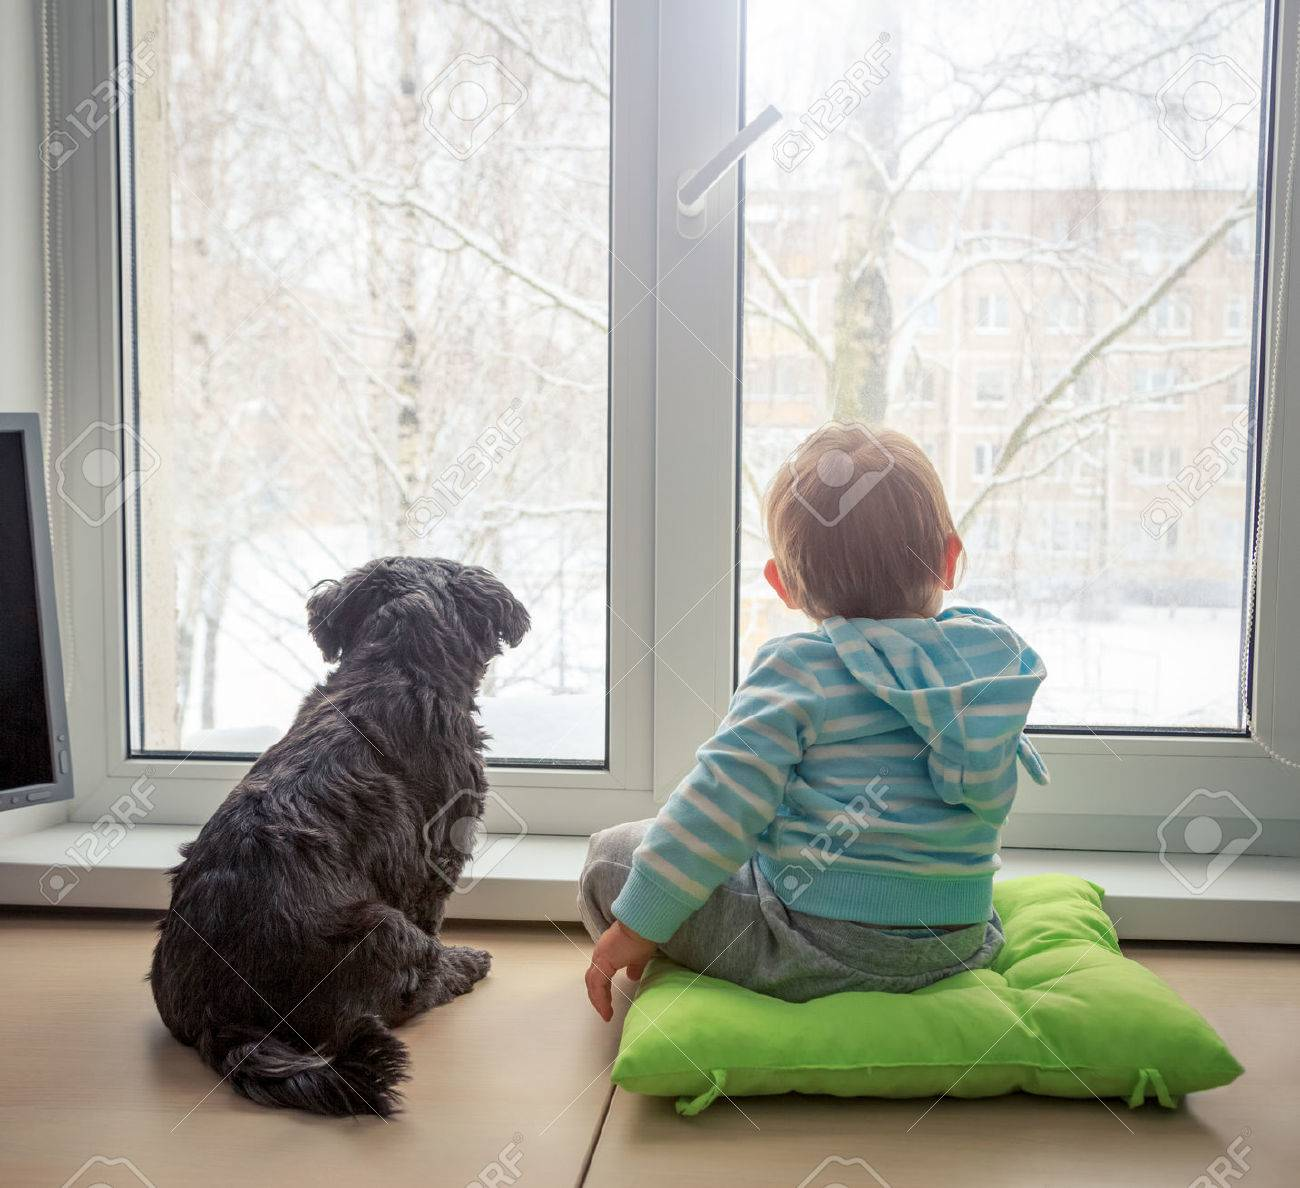 64434542-baby-with-dog-looking-through-a-window-in-winter-rear-view-boy-and-pet-friends-concept-toned-photo-w - Lasting friendships start early - Inspiration & Hope